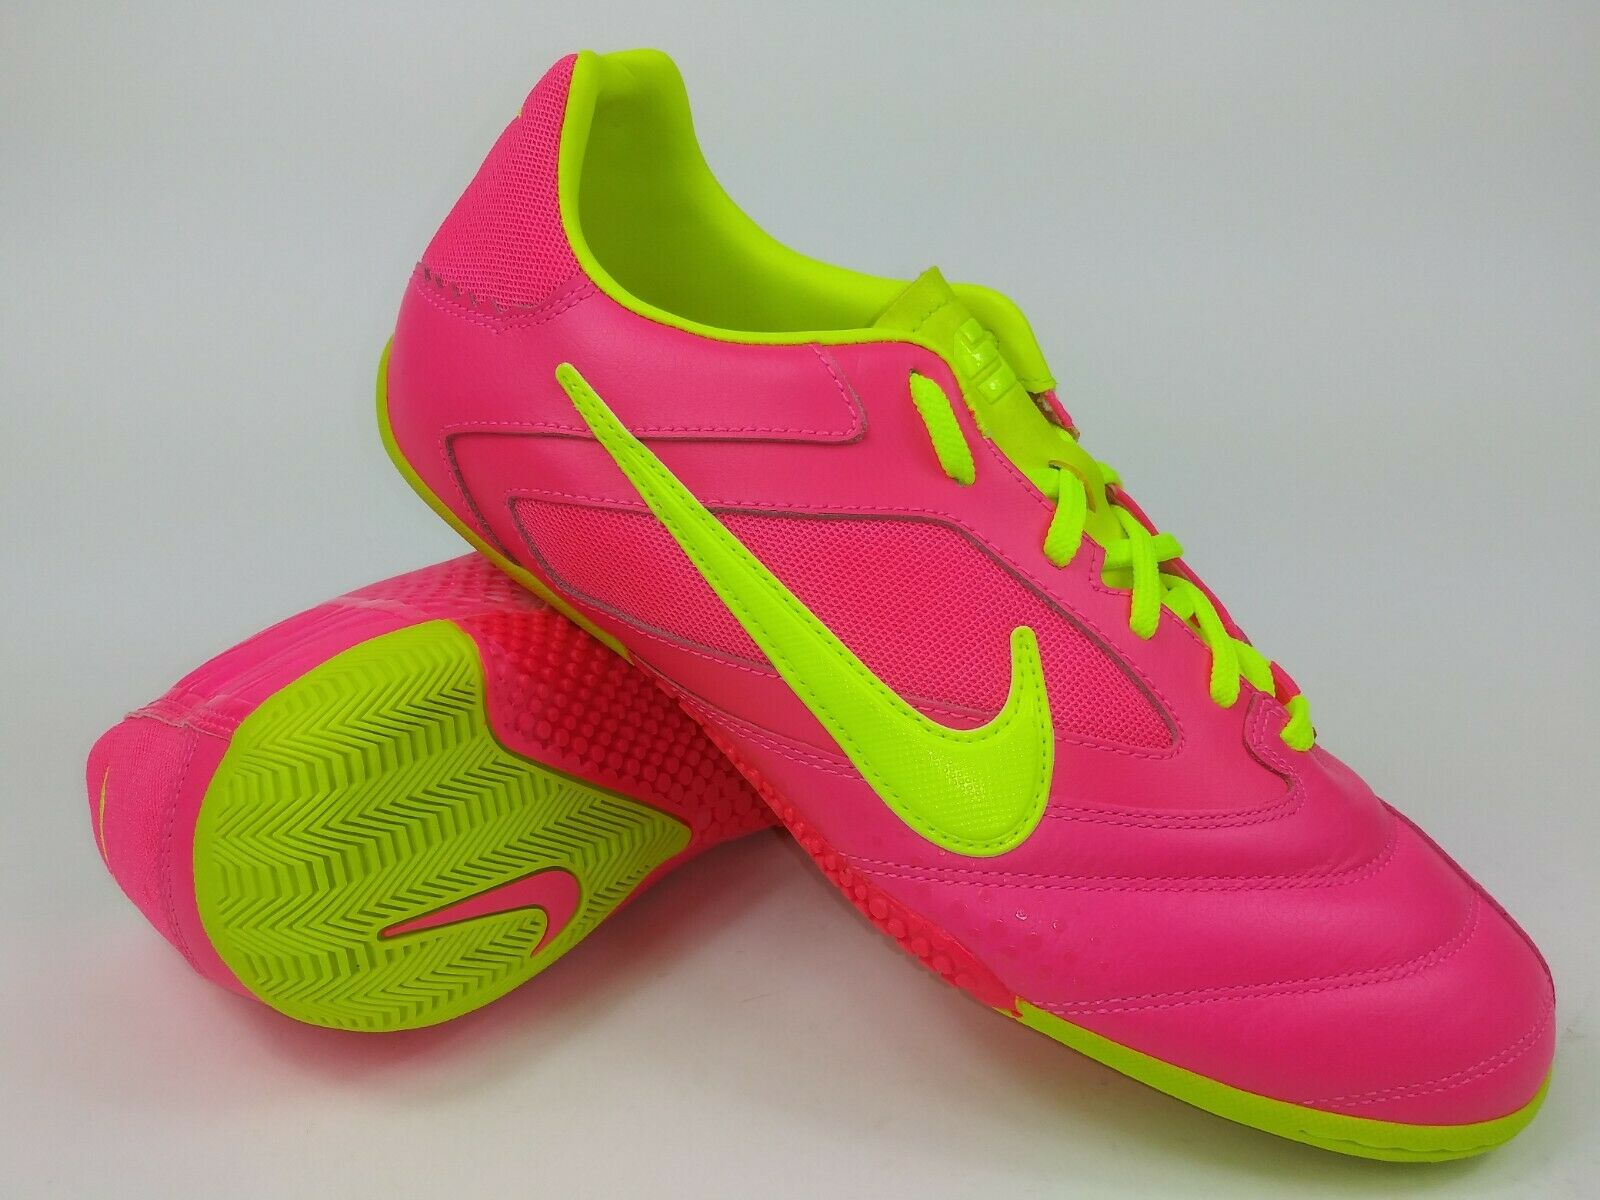 wholesale outlet multiple colors reliable quality Nike Mens Rare Nike5 Elastico PRO 415121-676 Pink Indoor Soccer ...